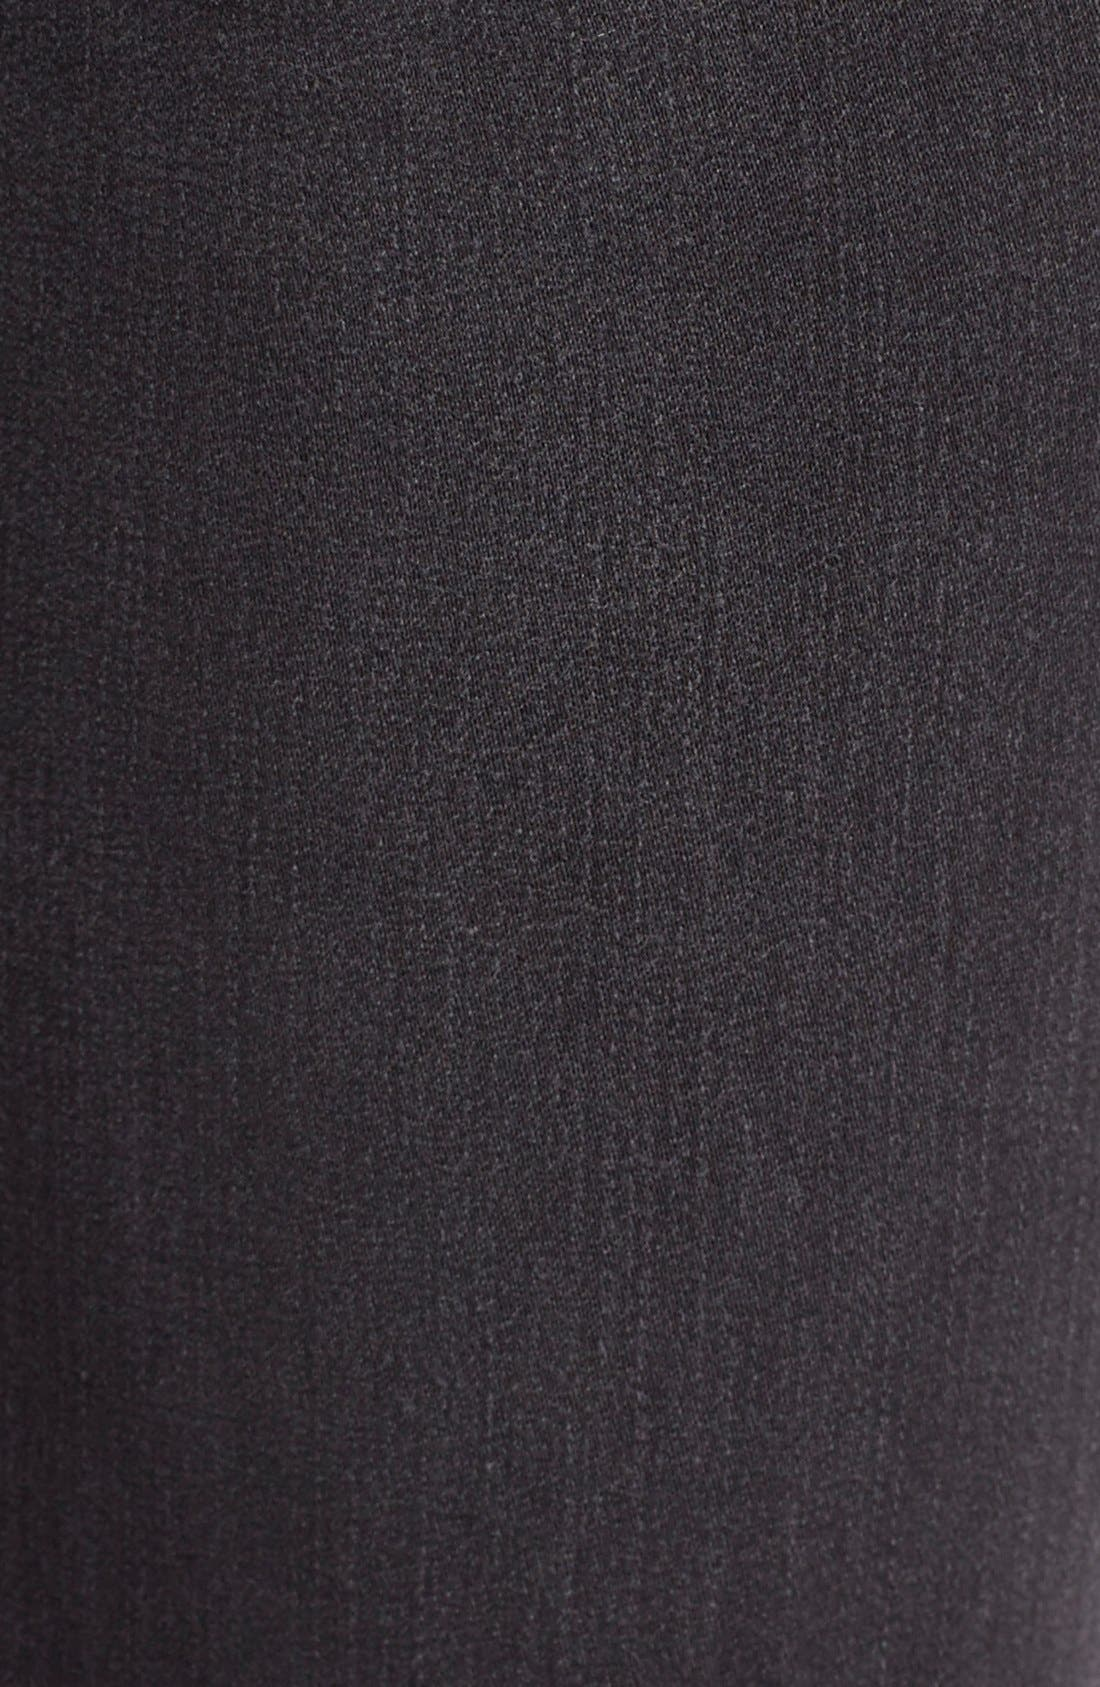 Abby StretchSkinny Jeans,                             Alternate thumbnail 5, color,                             020